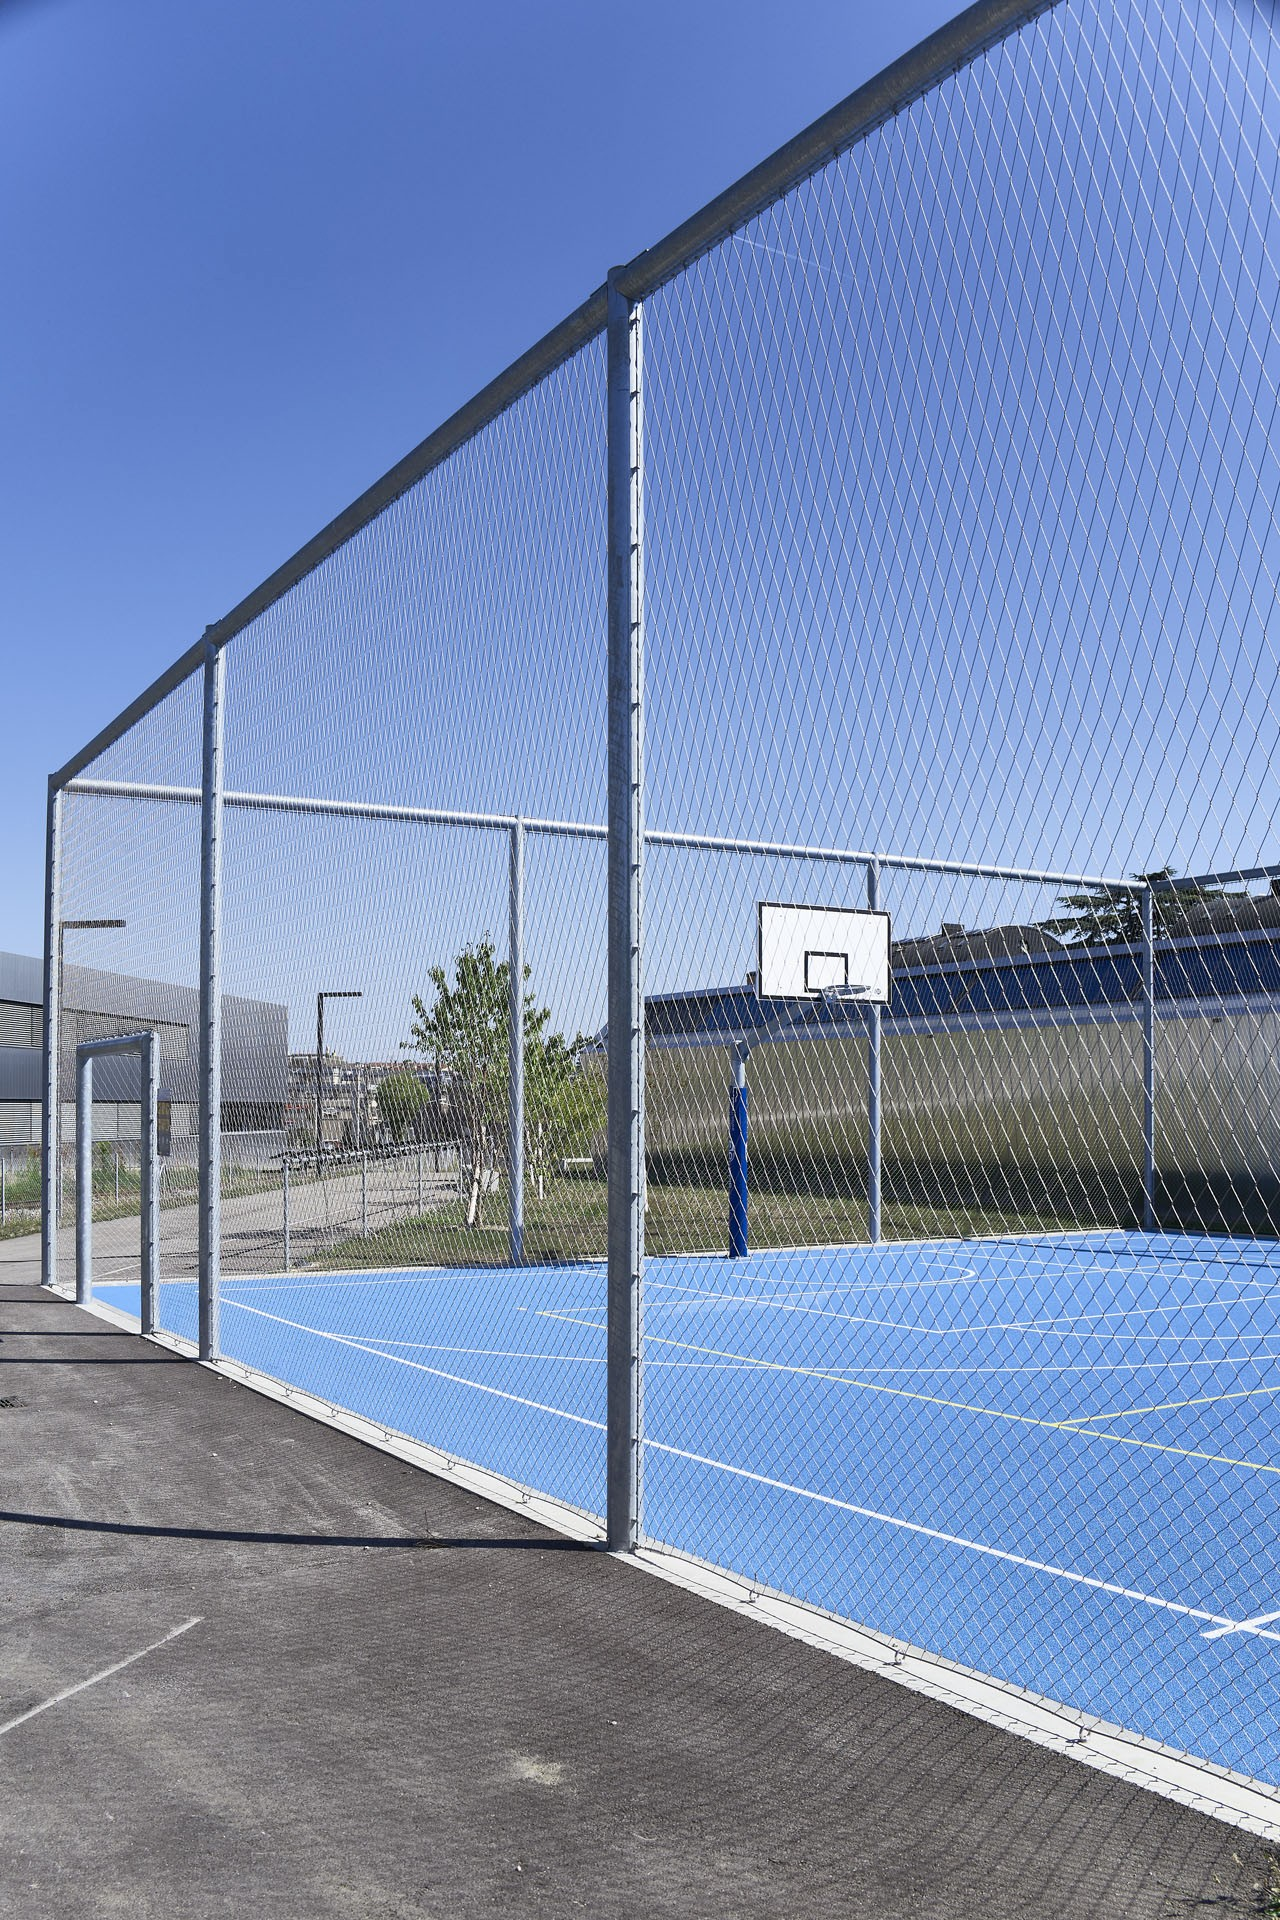 Wire rope mesh on basketball court